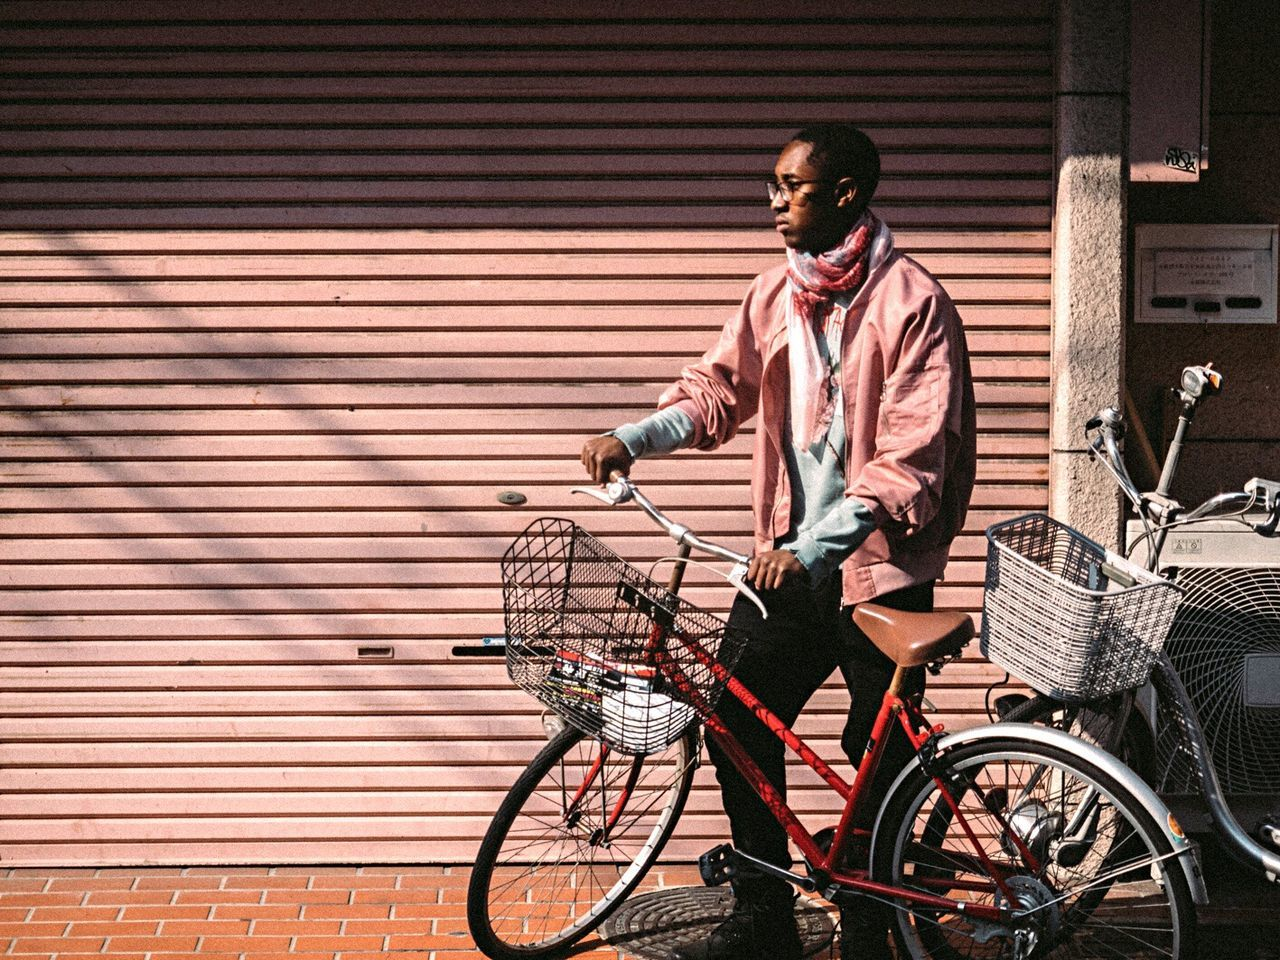 bicycle, transportation, only men, cycling, mode of transport, mid adult, commuter, riding, one man only, adult, young adult, one person, adults only, one young man only, standing, day, people, business, men, real people, city, outdoors, businessman